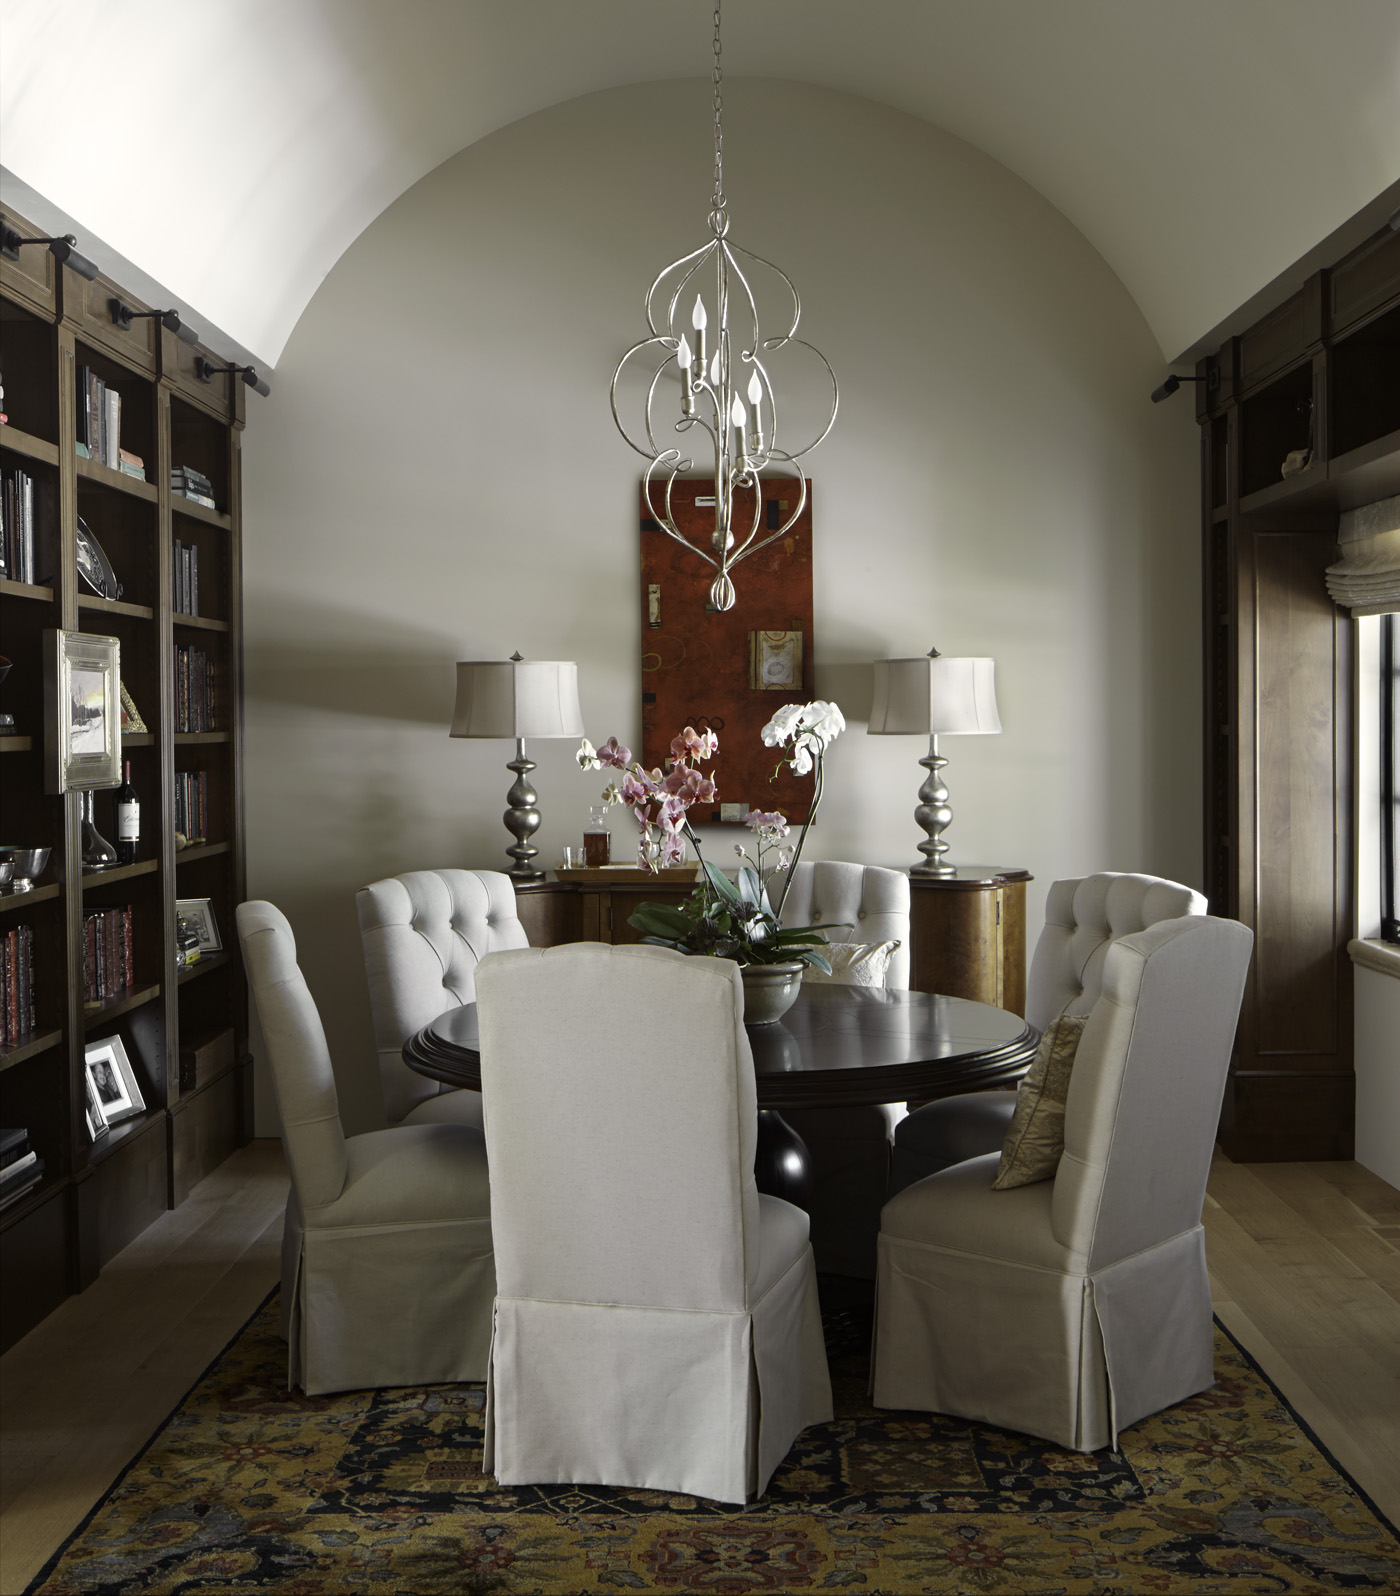 Private Residence. Colorado Homes and Lifestyles Magazine. David Patterson Photography. Artist: Don Quade.